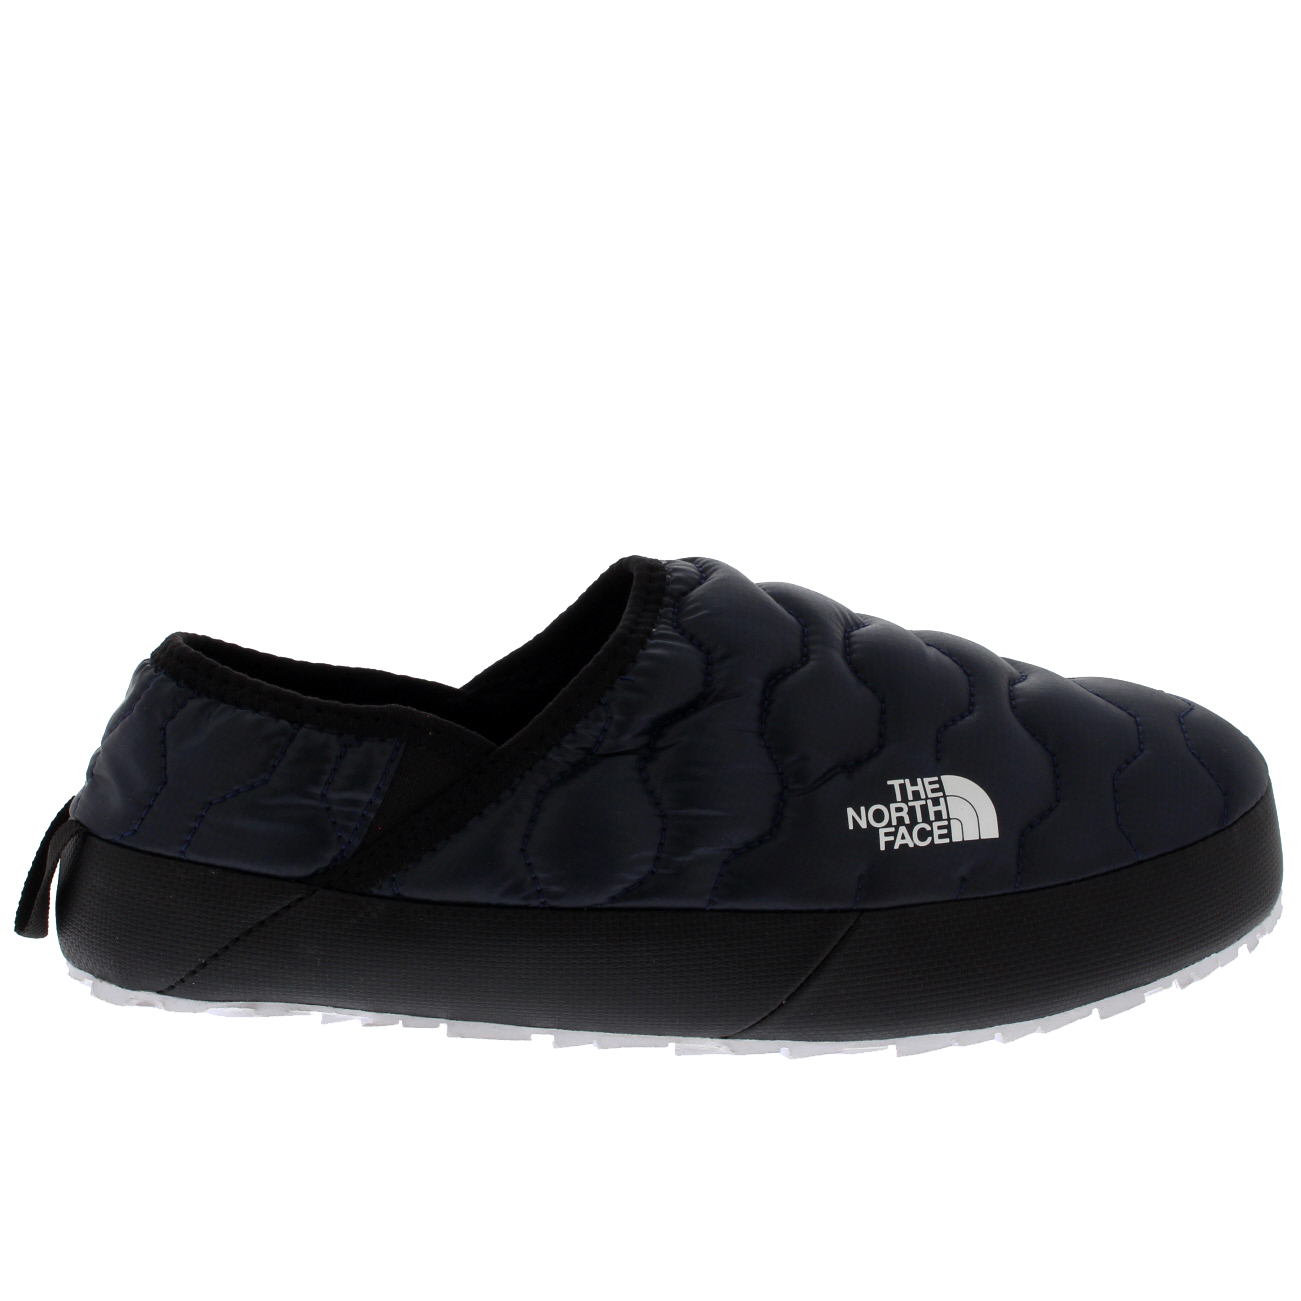 a706f397b02 Details about Mens The North Face Thermoball Traction Mule IV Indoor Winter  Slippers All Sizes